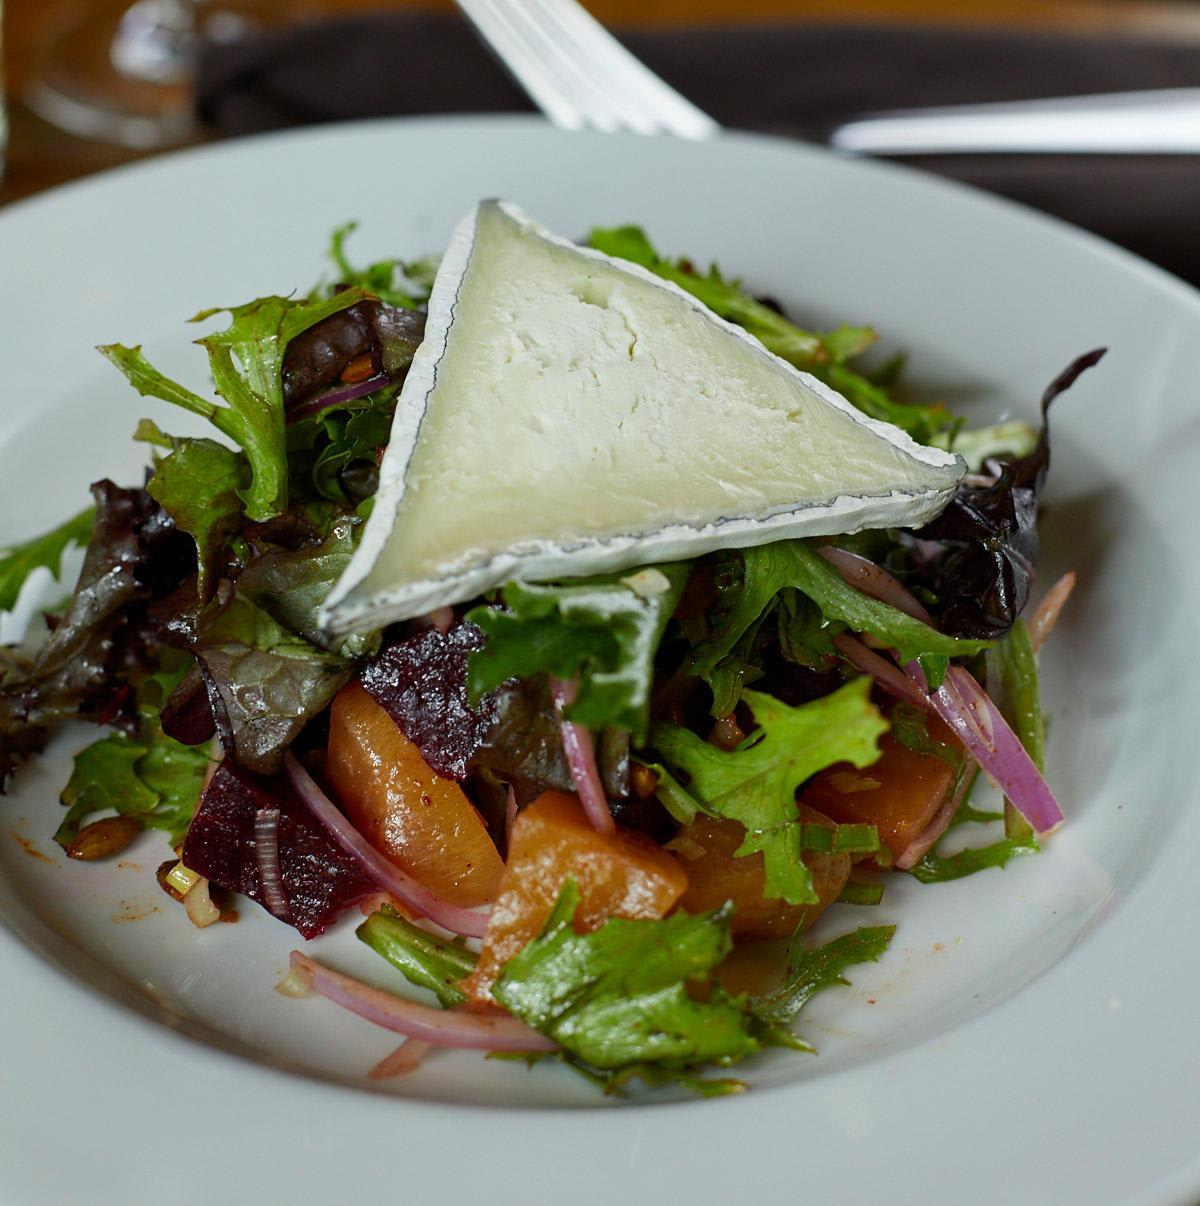 Humboldt Fog Goat Cheese, Mixed Greens, Red & Green Onion Chili Dusted Pumpkin Seeds & Citrus Vinaigrette at Sauce: Belden Place